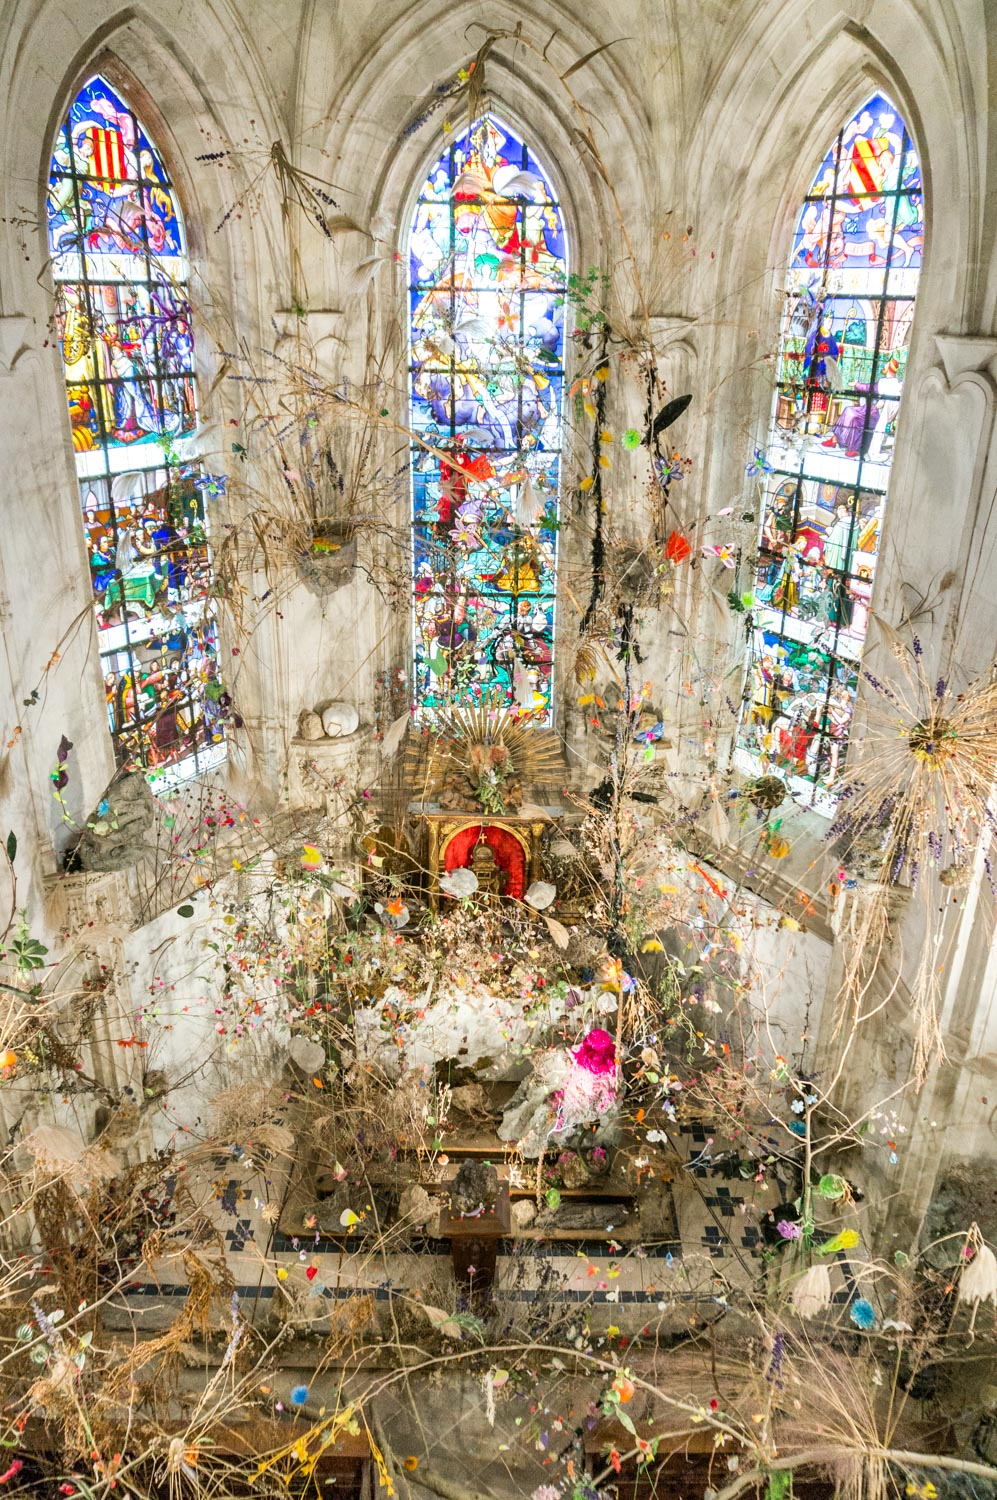 The rather odd exhibition in the chateau chapel - it was like an explosion of sticks, feathers and glitter!